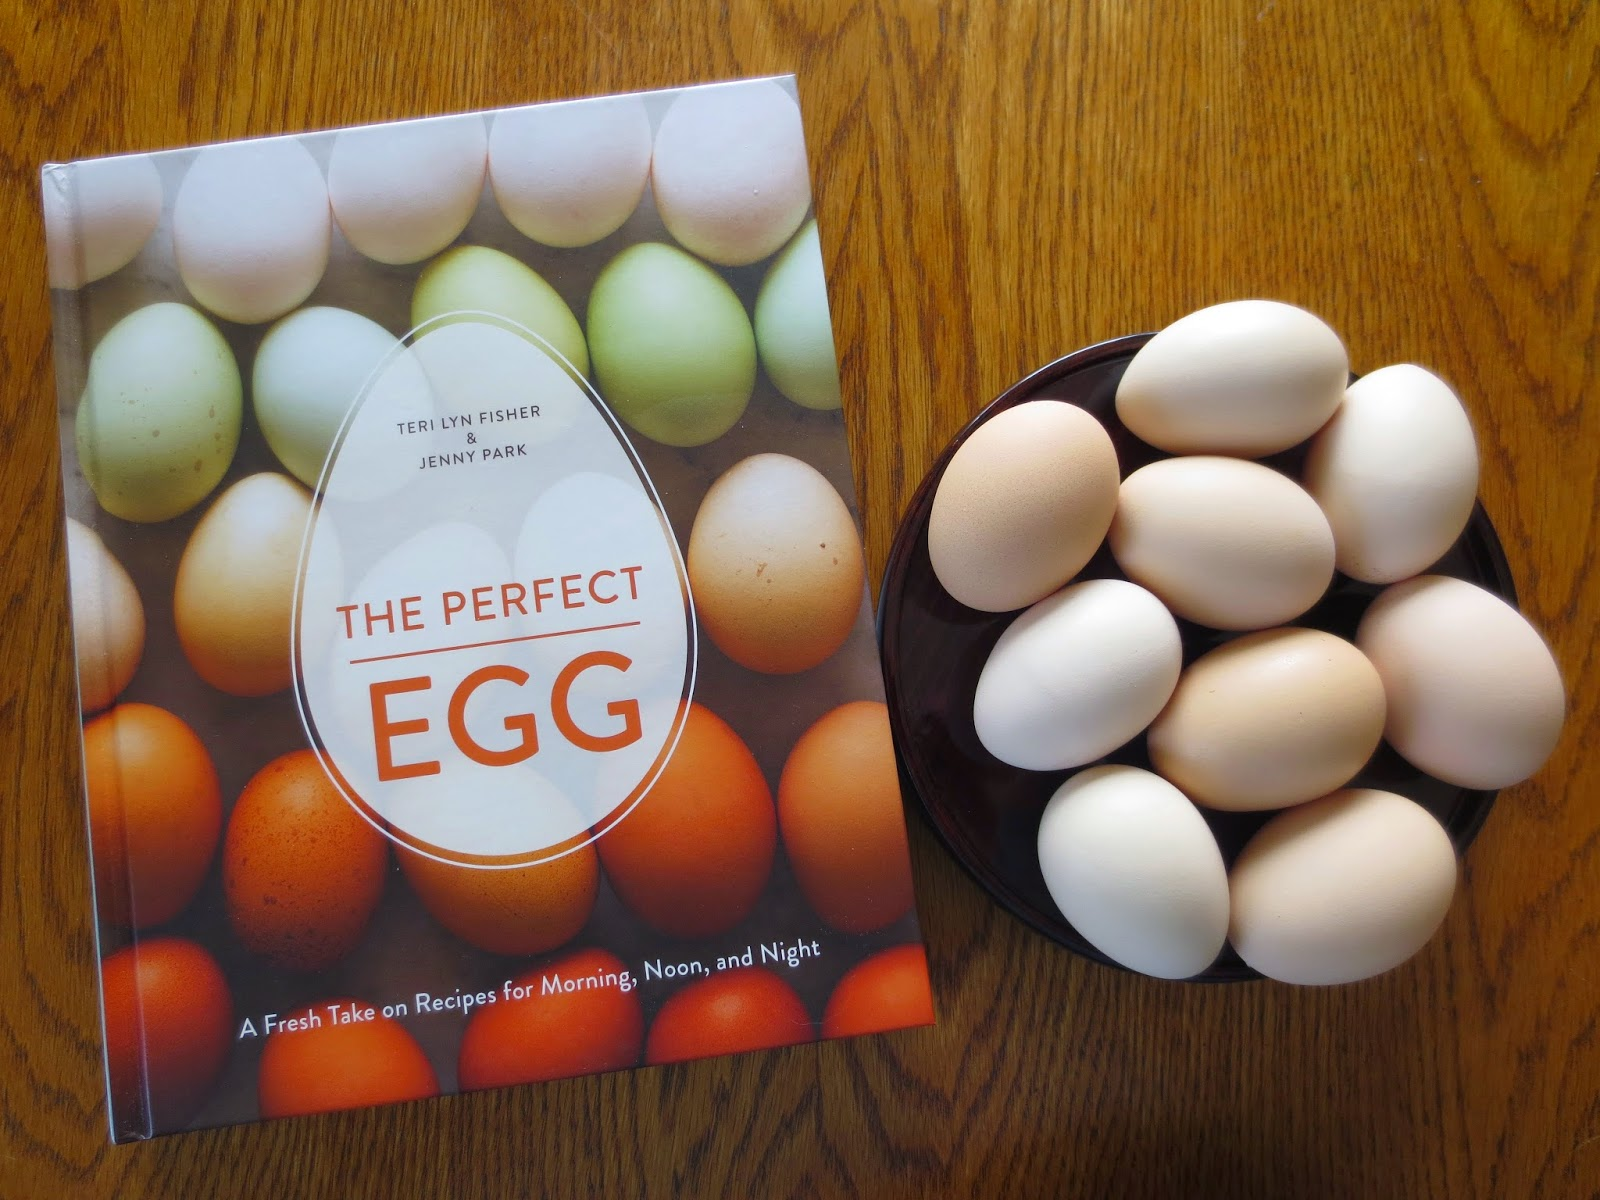 A quiet country life book review the perfect egg i chose this book for a couple of reasons one we are looking at ways to eat less meat and have more meatless meals eggs are kind of middle ground forumfinder Gallery